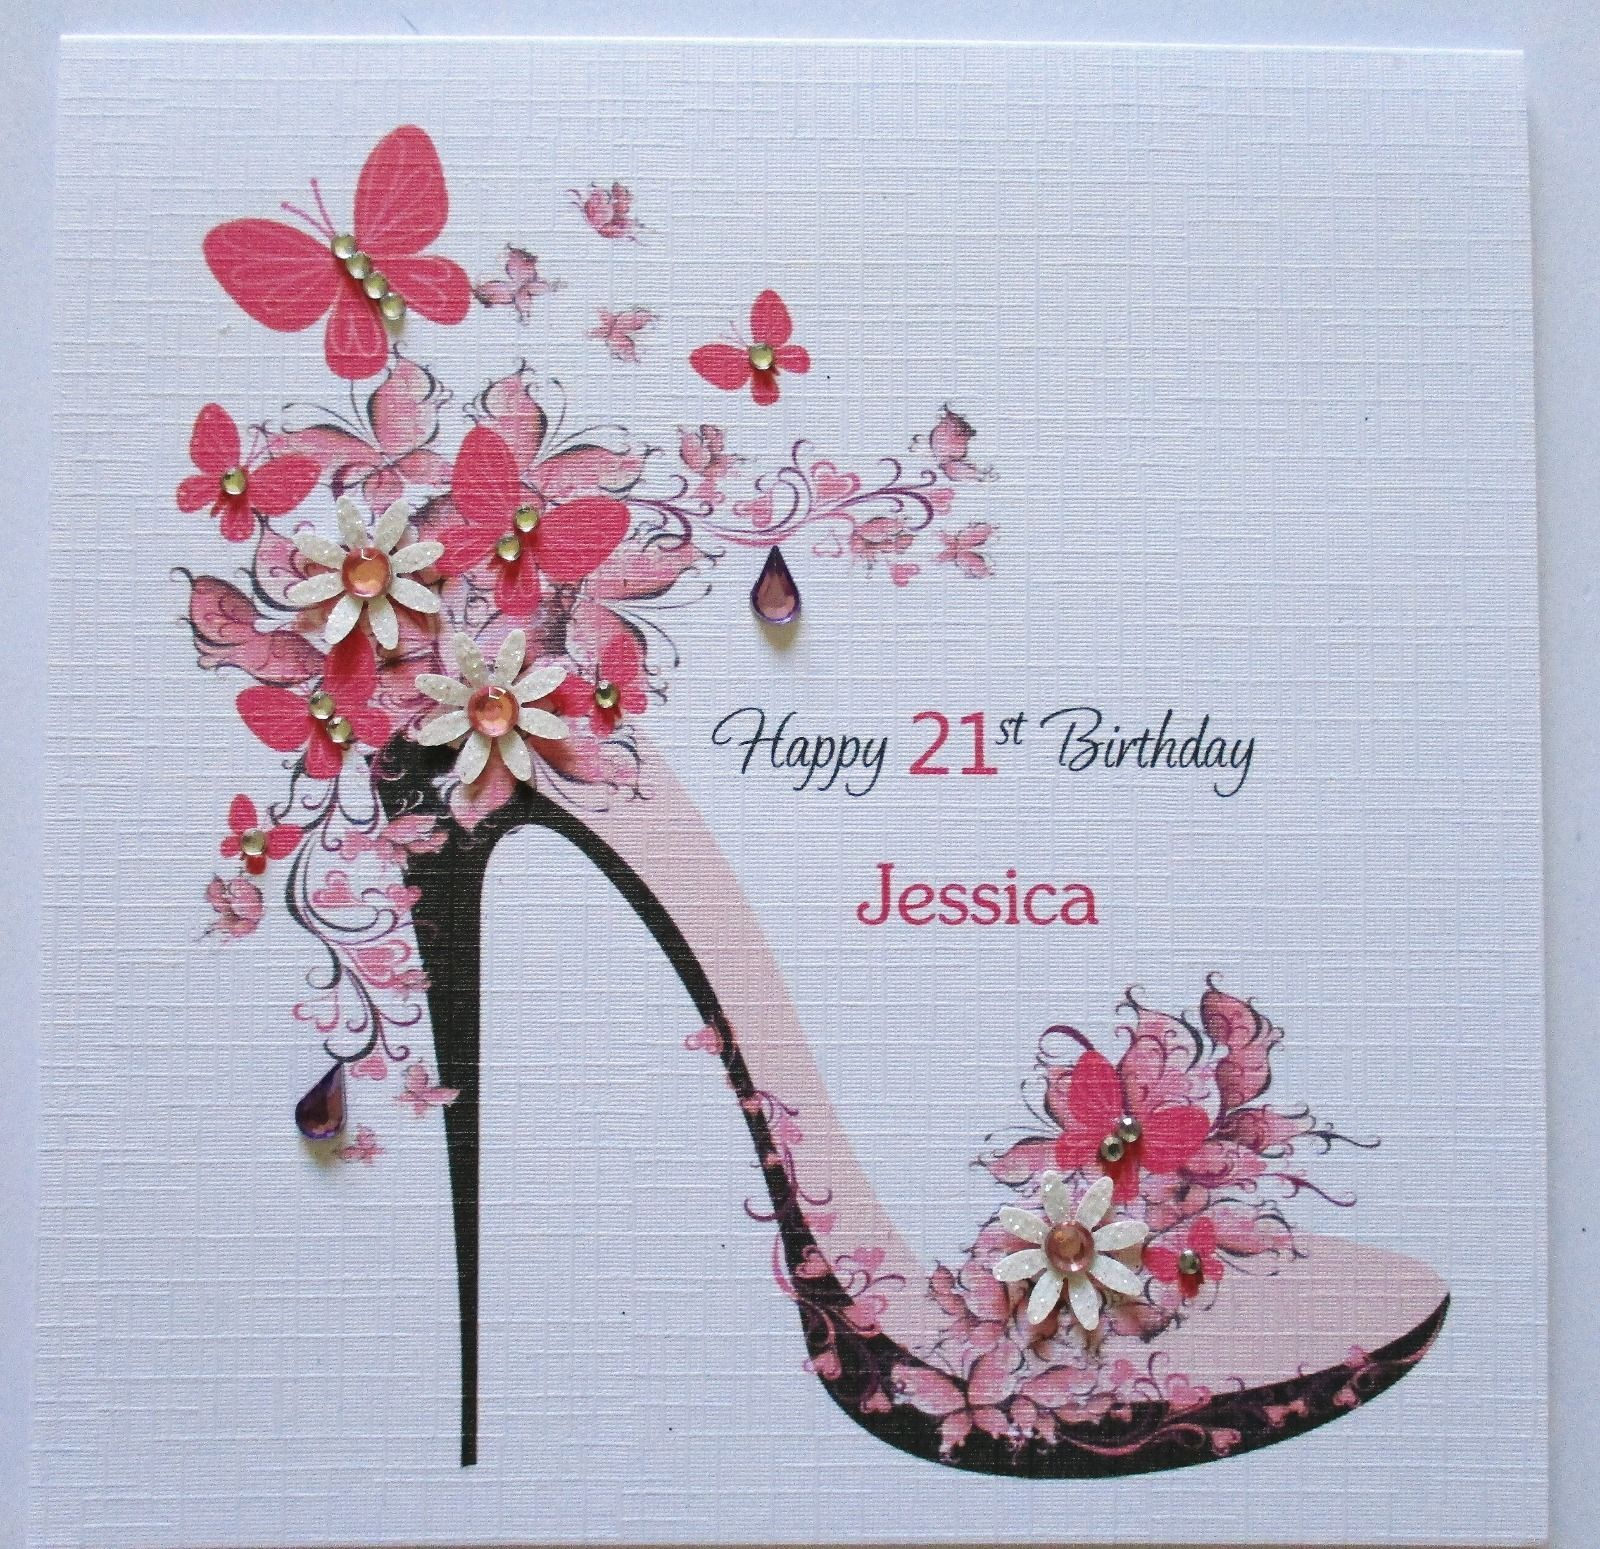 Card Making Ideas 21st Birthday Part - 48: Handmade Personalised Female Birthday Card 18th 21st 30th 40th 50th 60th |  EBay More